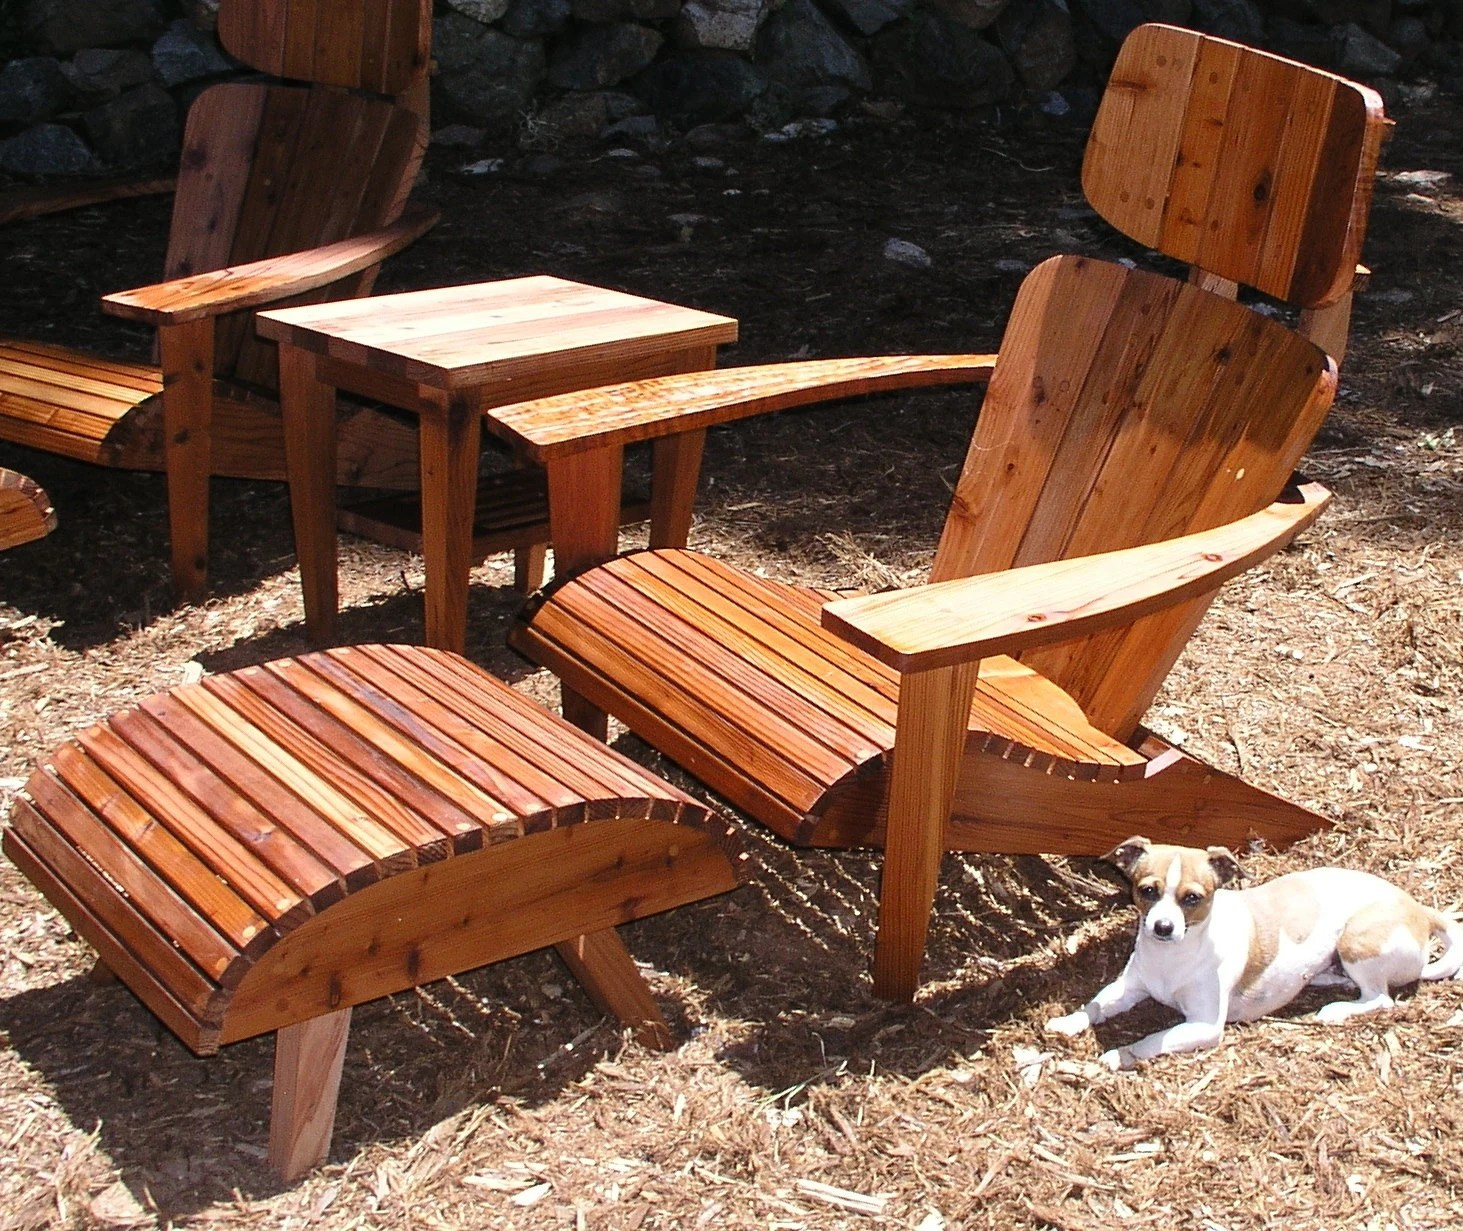 Adirondack Chair Set Modern Adirondack Chair Set Chair Headrest Ottoman And Side Table Reclaimed Redwood Mountain Modern Eames Lounge Chair